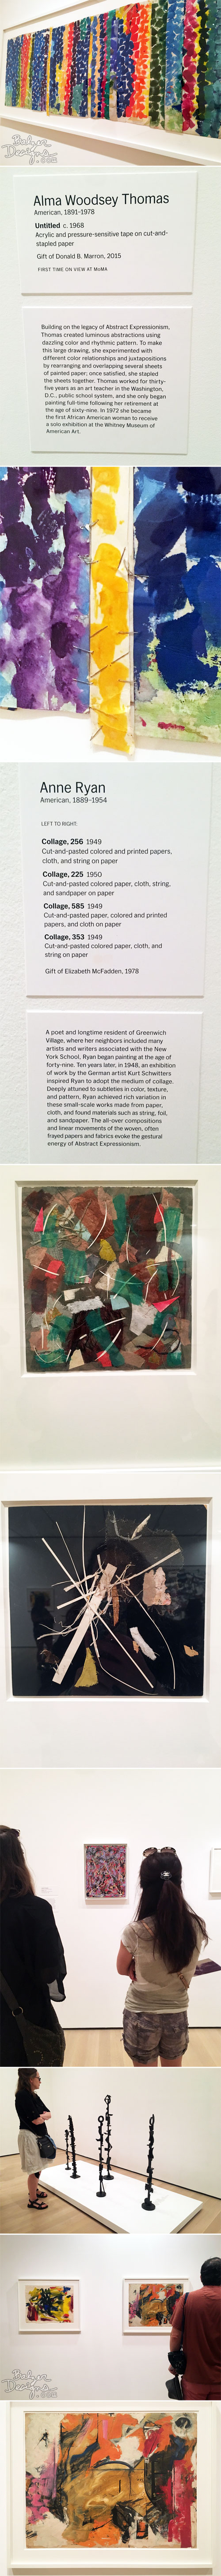 From the Balzer Designs Blog: Making Space: Women Artists and Postwar Abstraction at MoMA